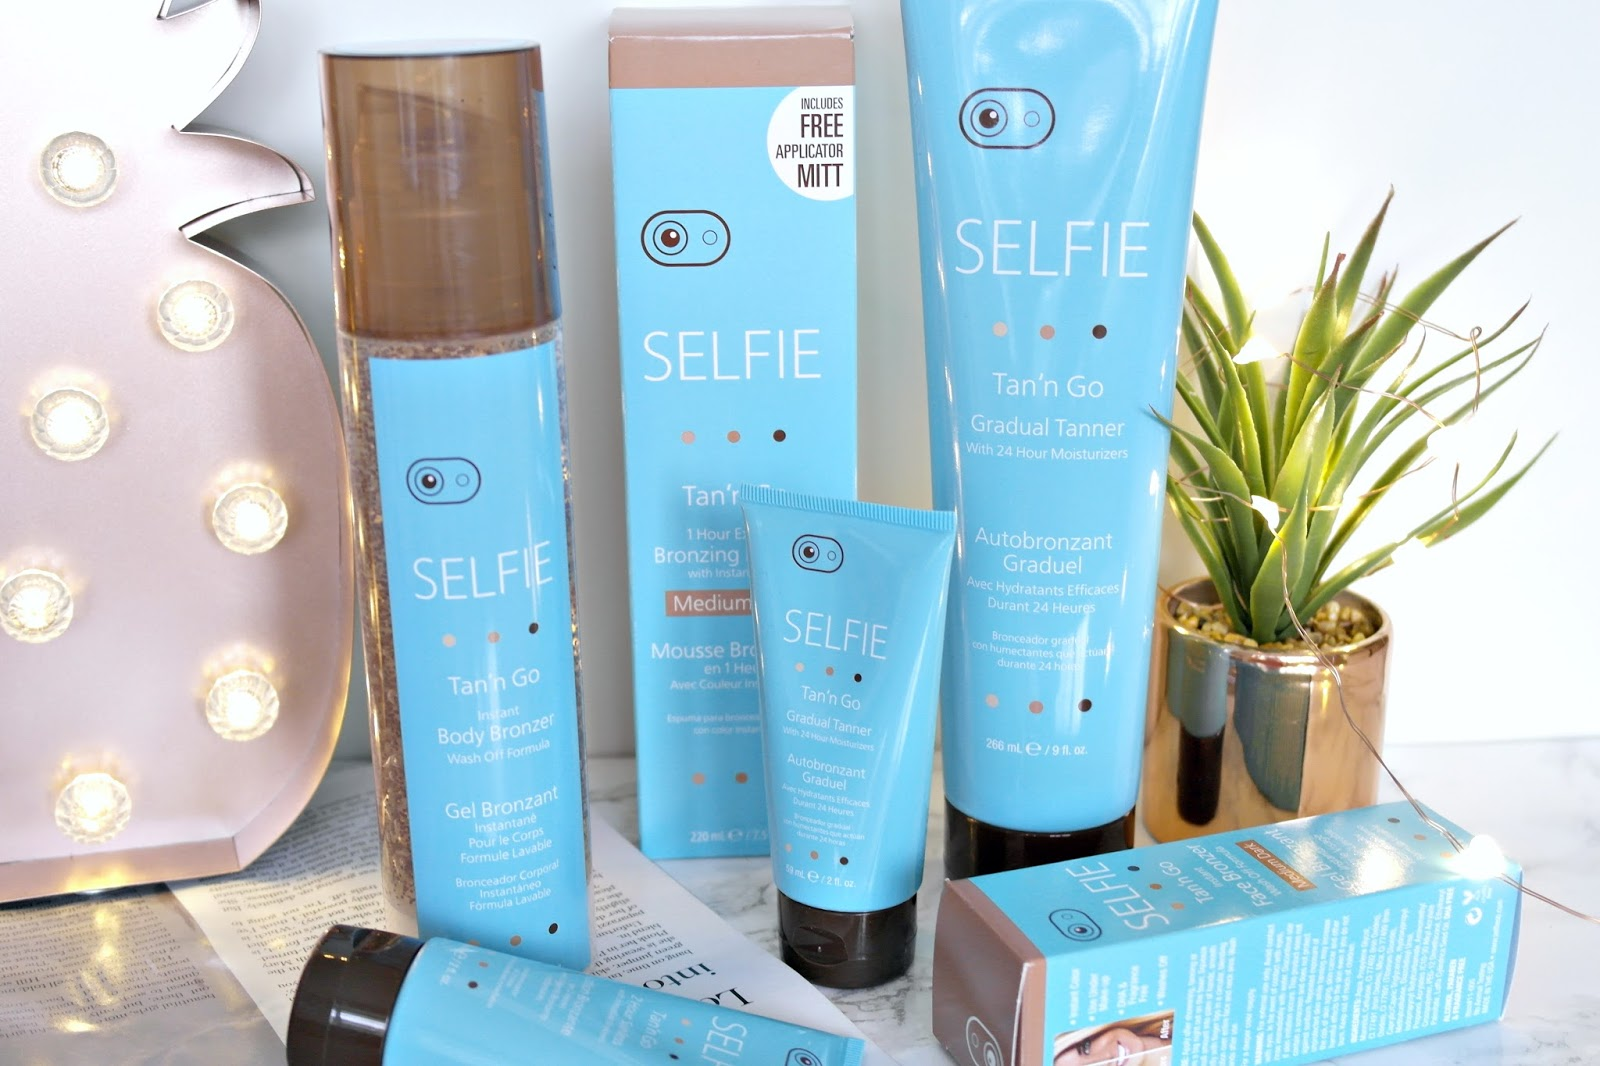 Selfie fake tan review, beauty blogger